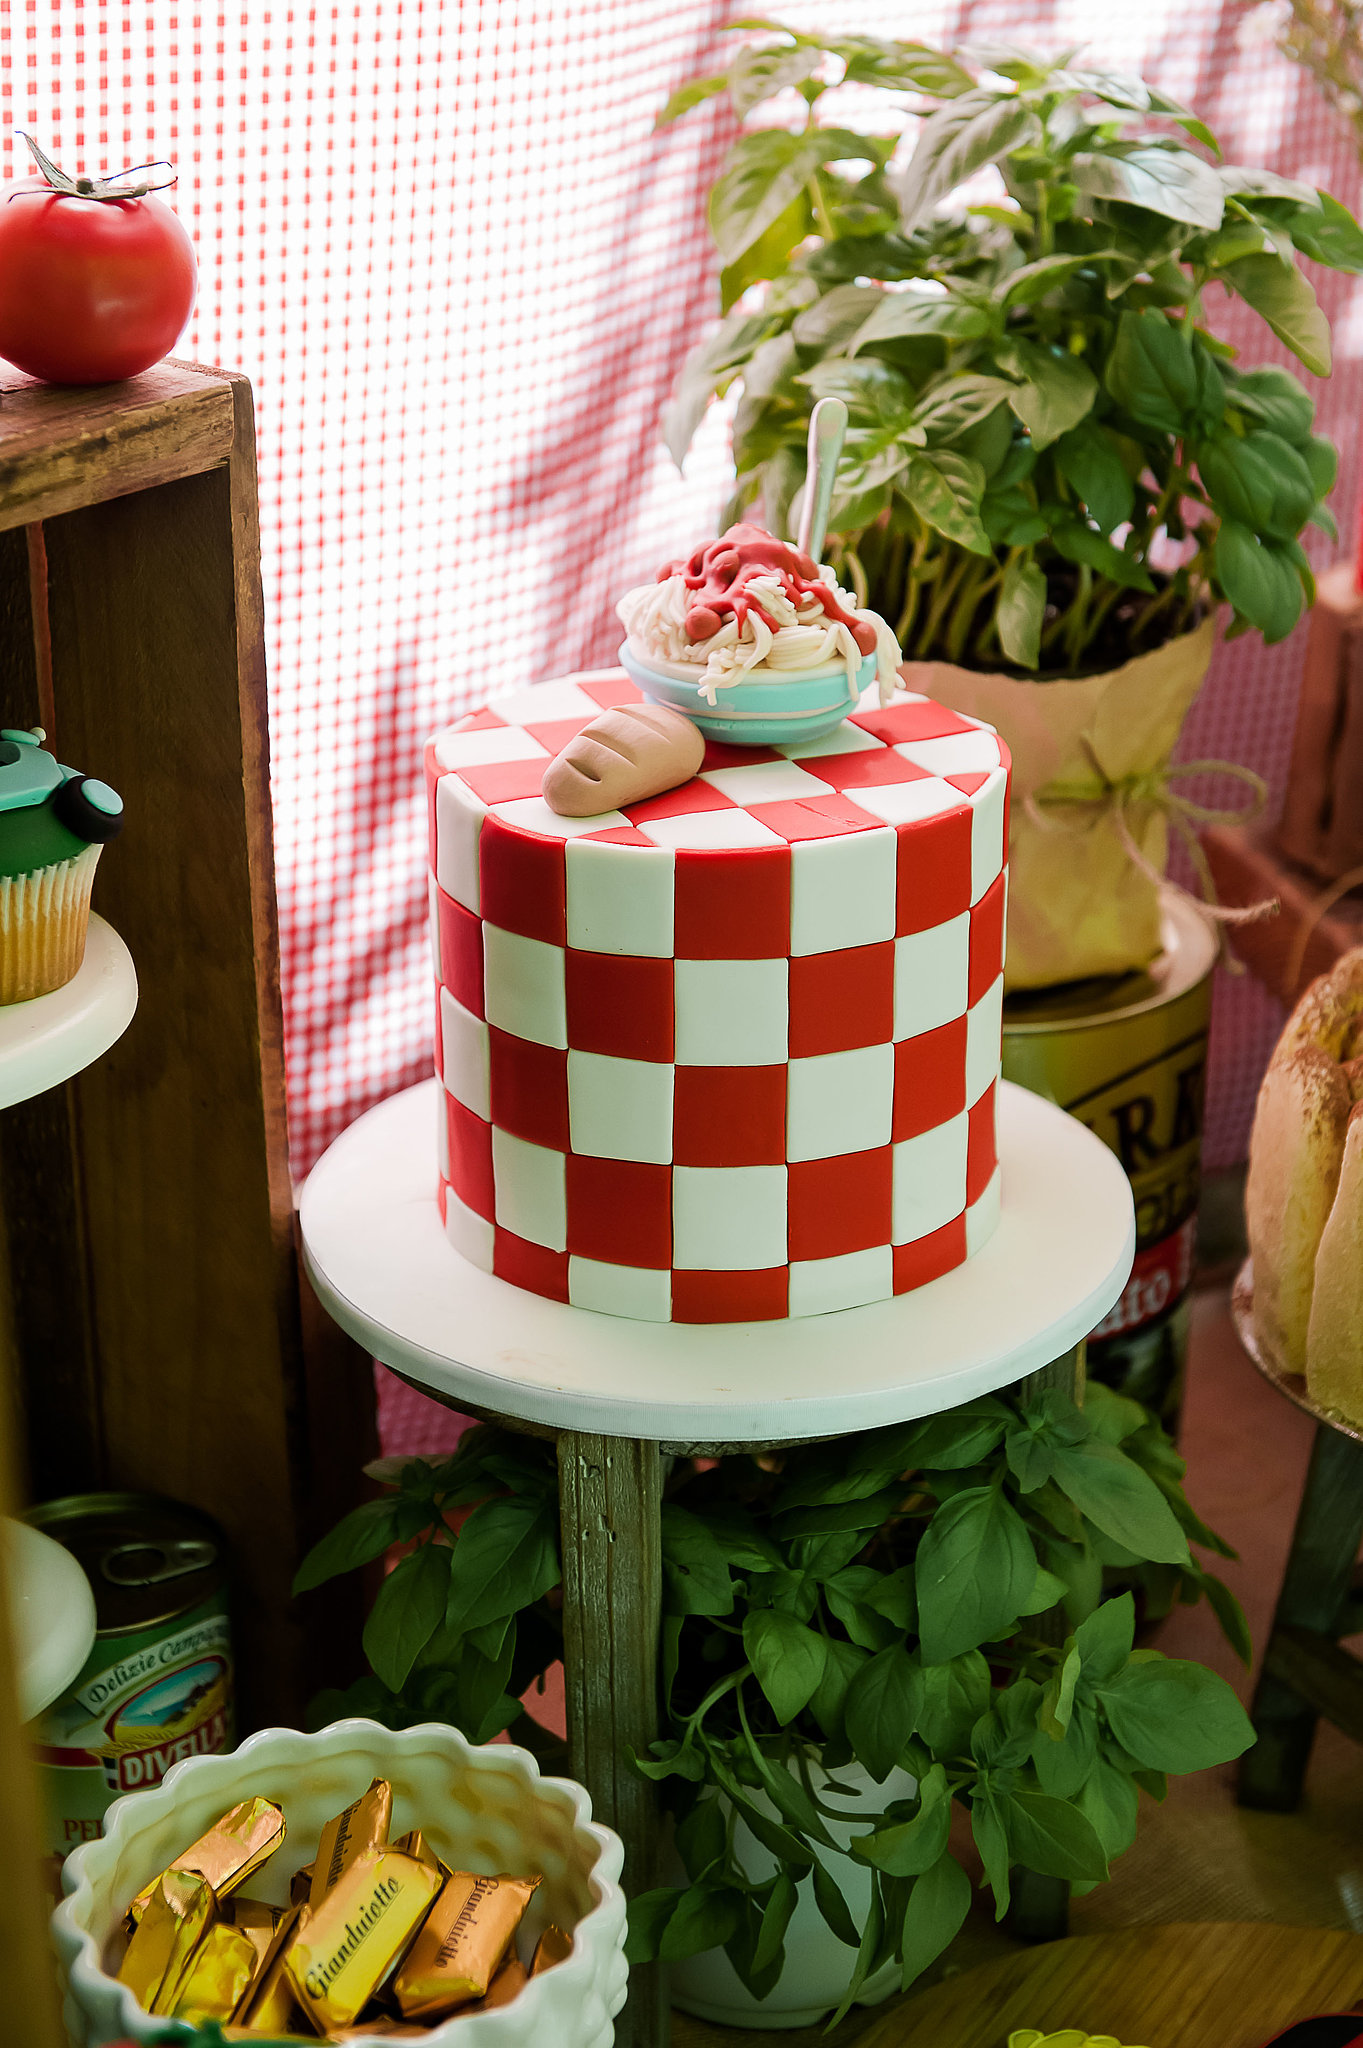 Pasta-Themed Cake | 65 of the Very Best Cake Ideas For Your Birthday ...